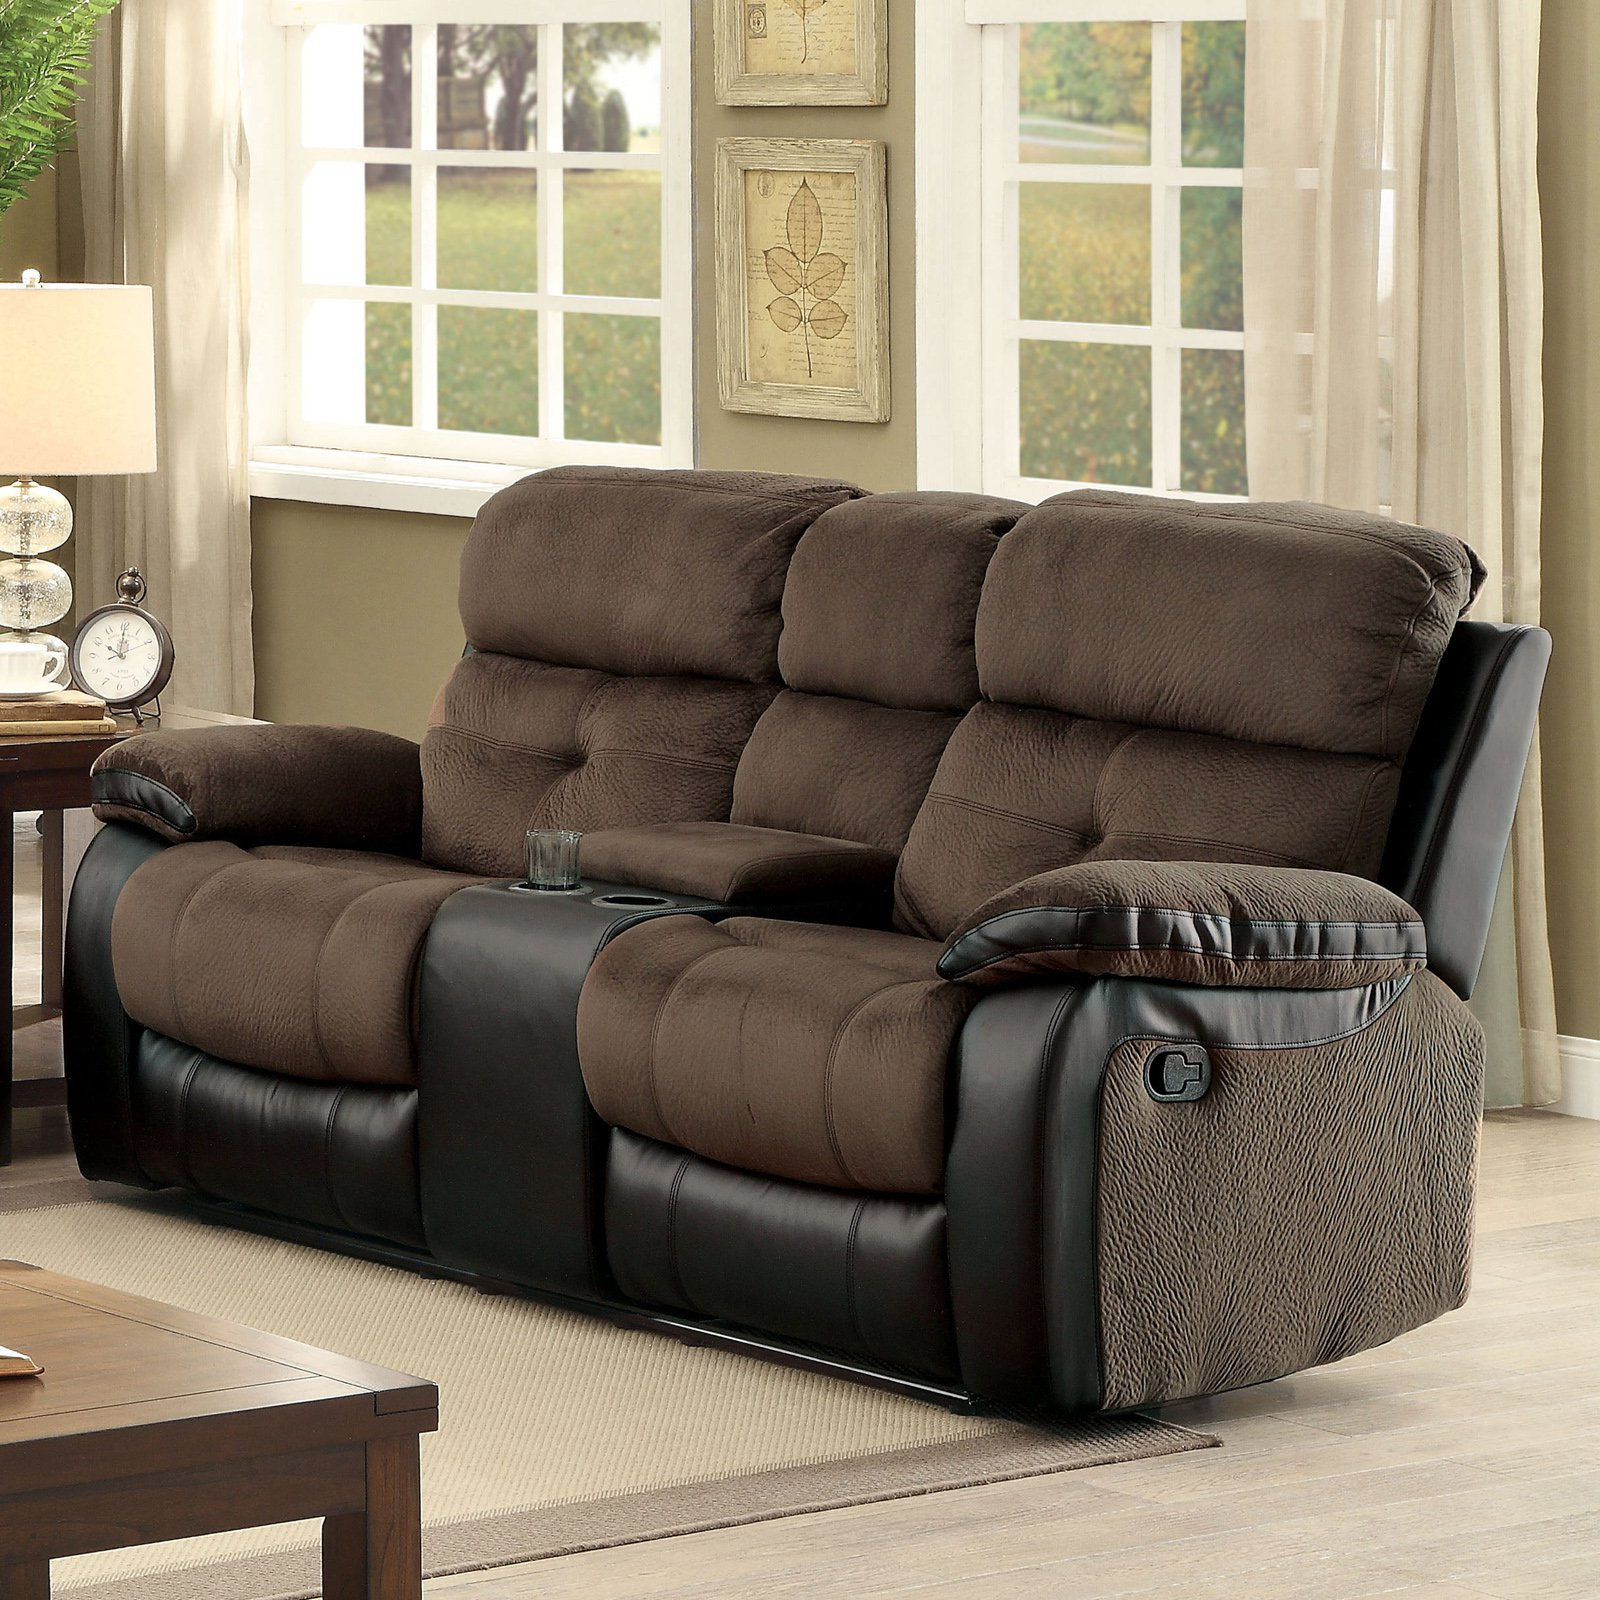 Furniture of America Nelson Reclining Loveseat